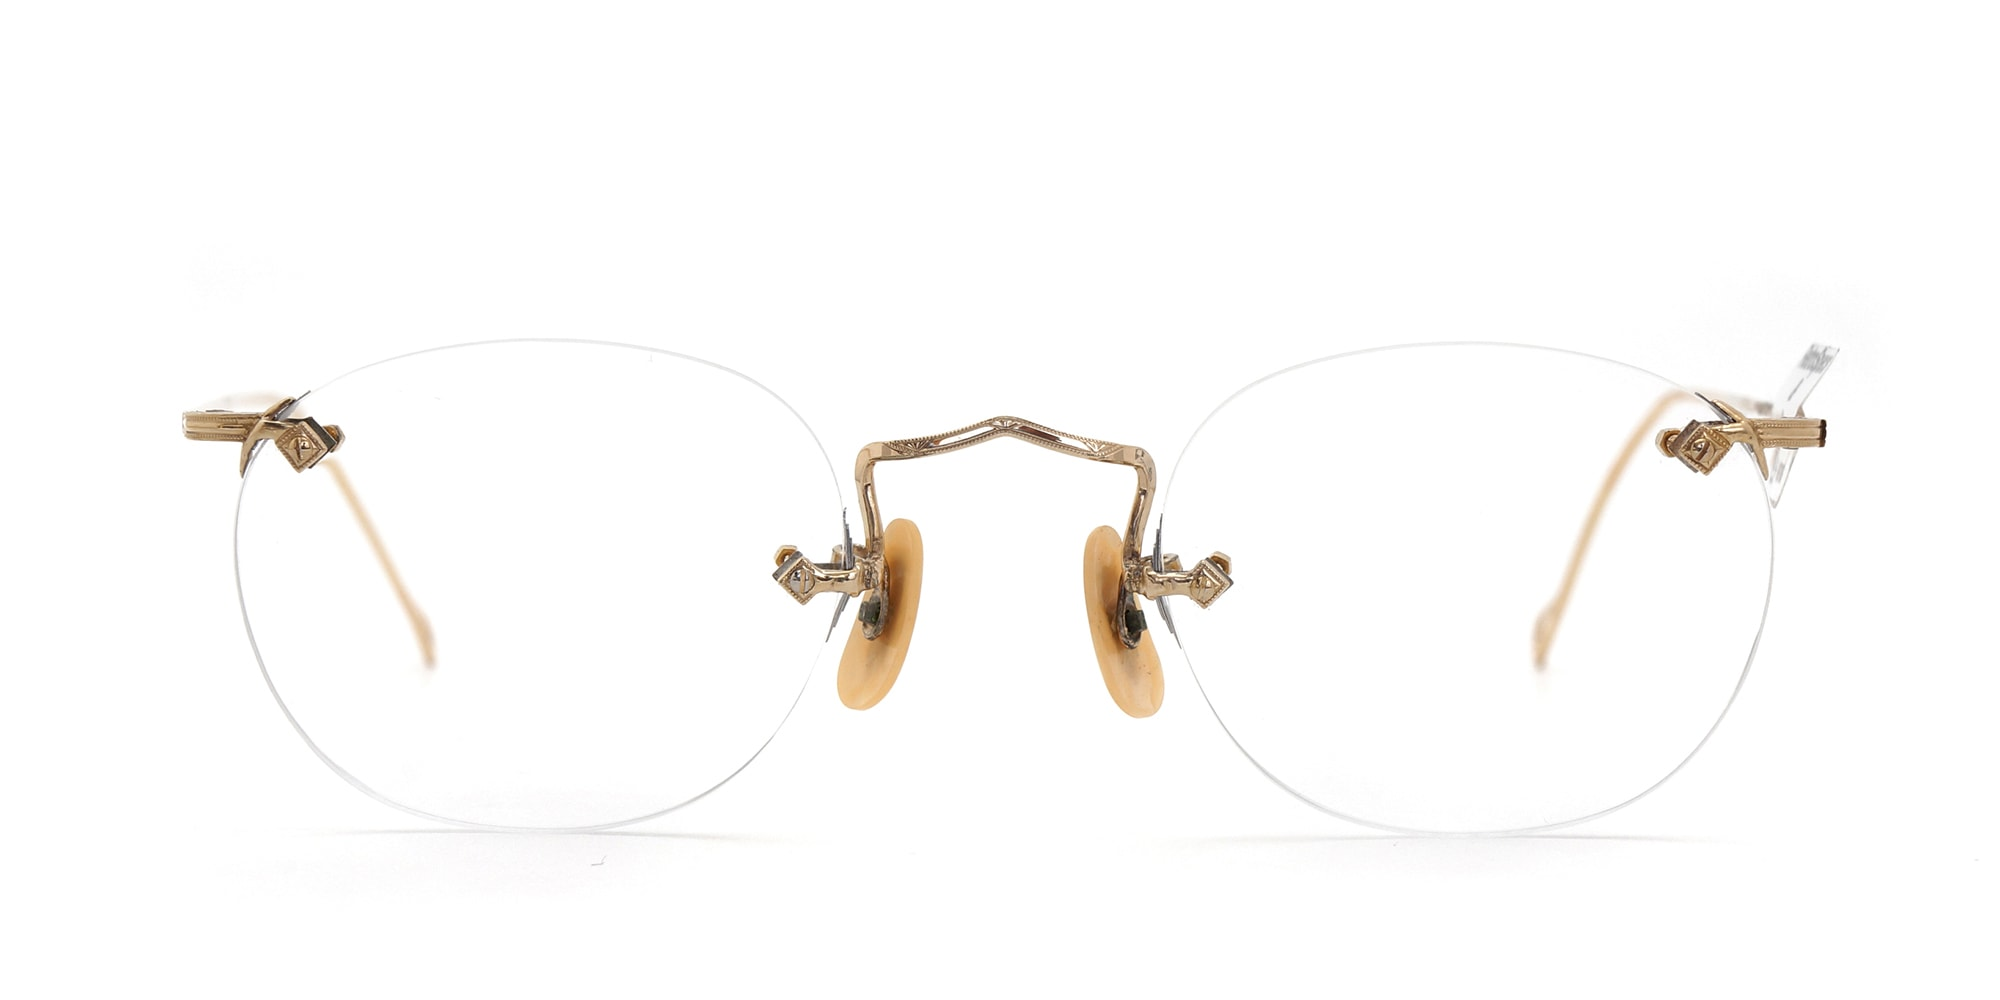 The Spectacle メガネ 1930s American Optical 3-Piece Ful-Vue G 43-22 イメージ3